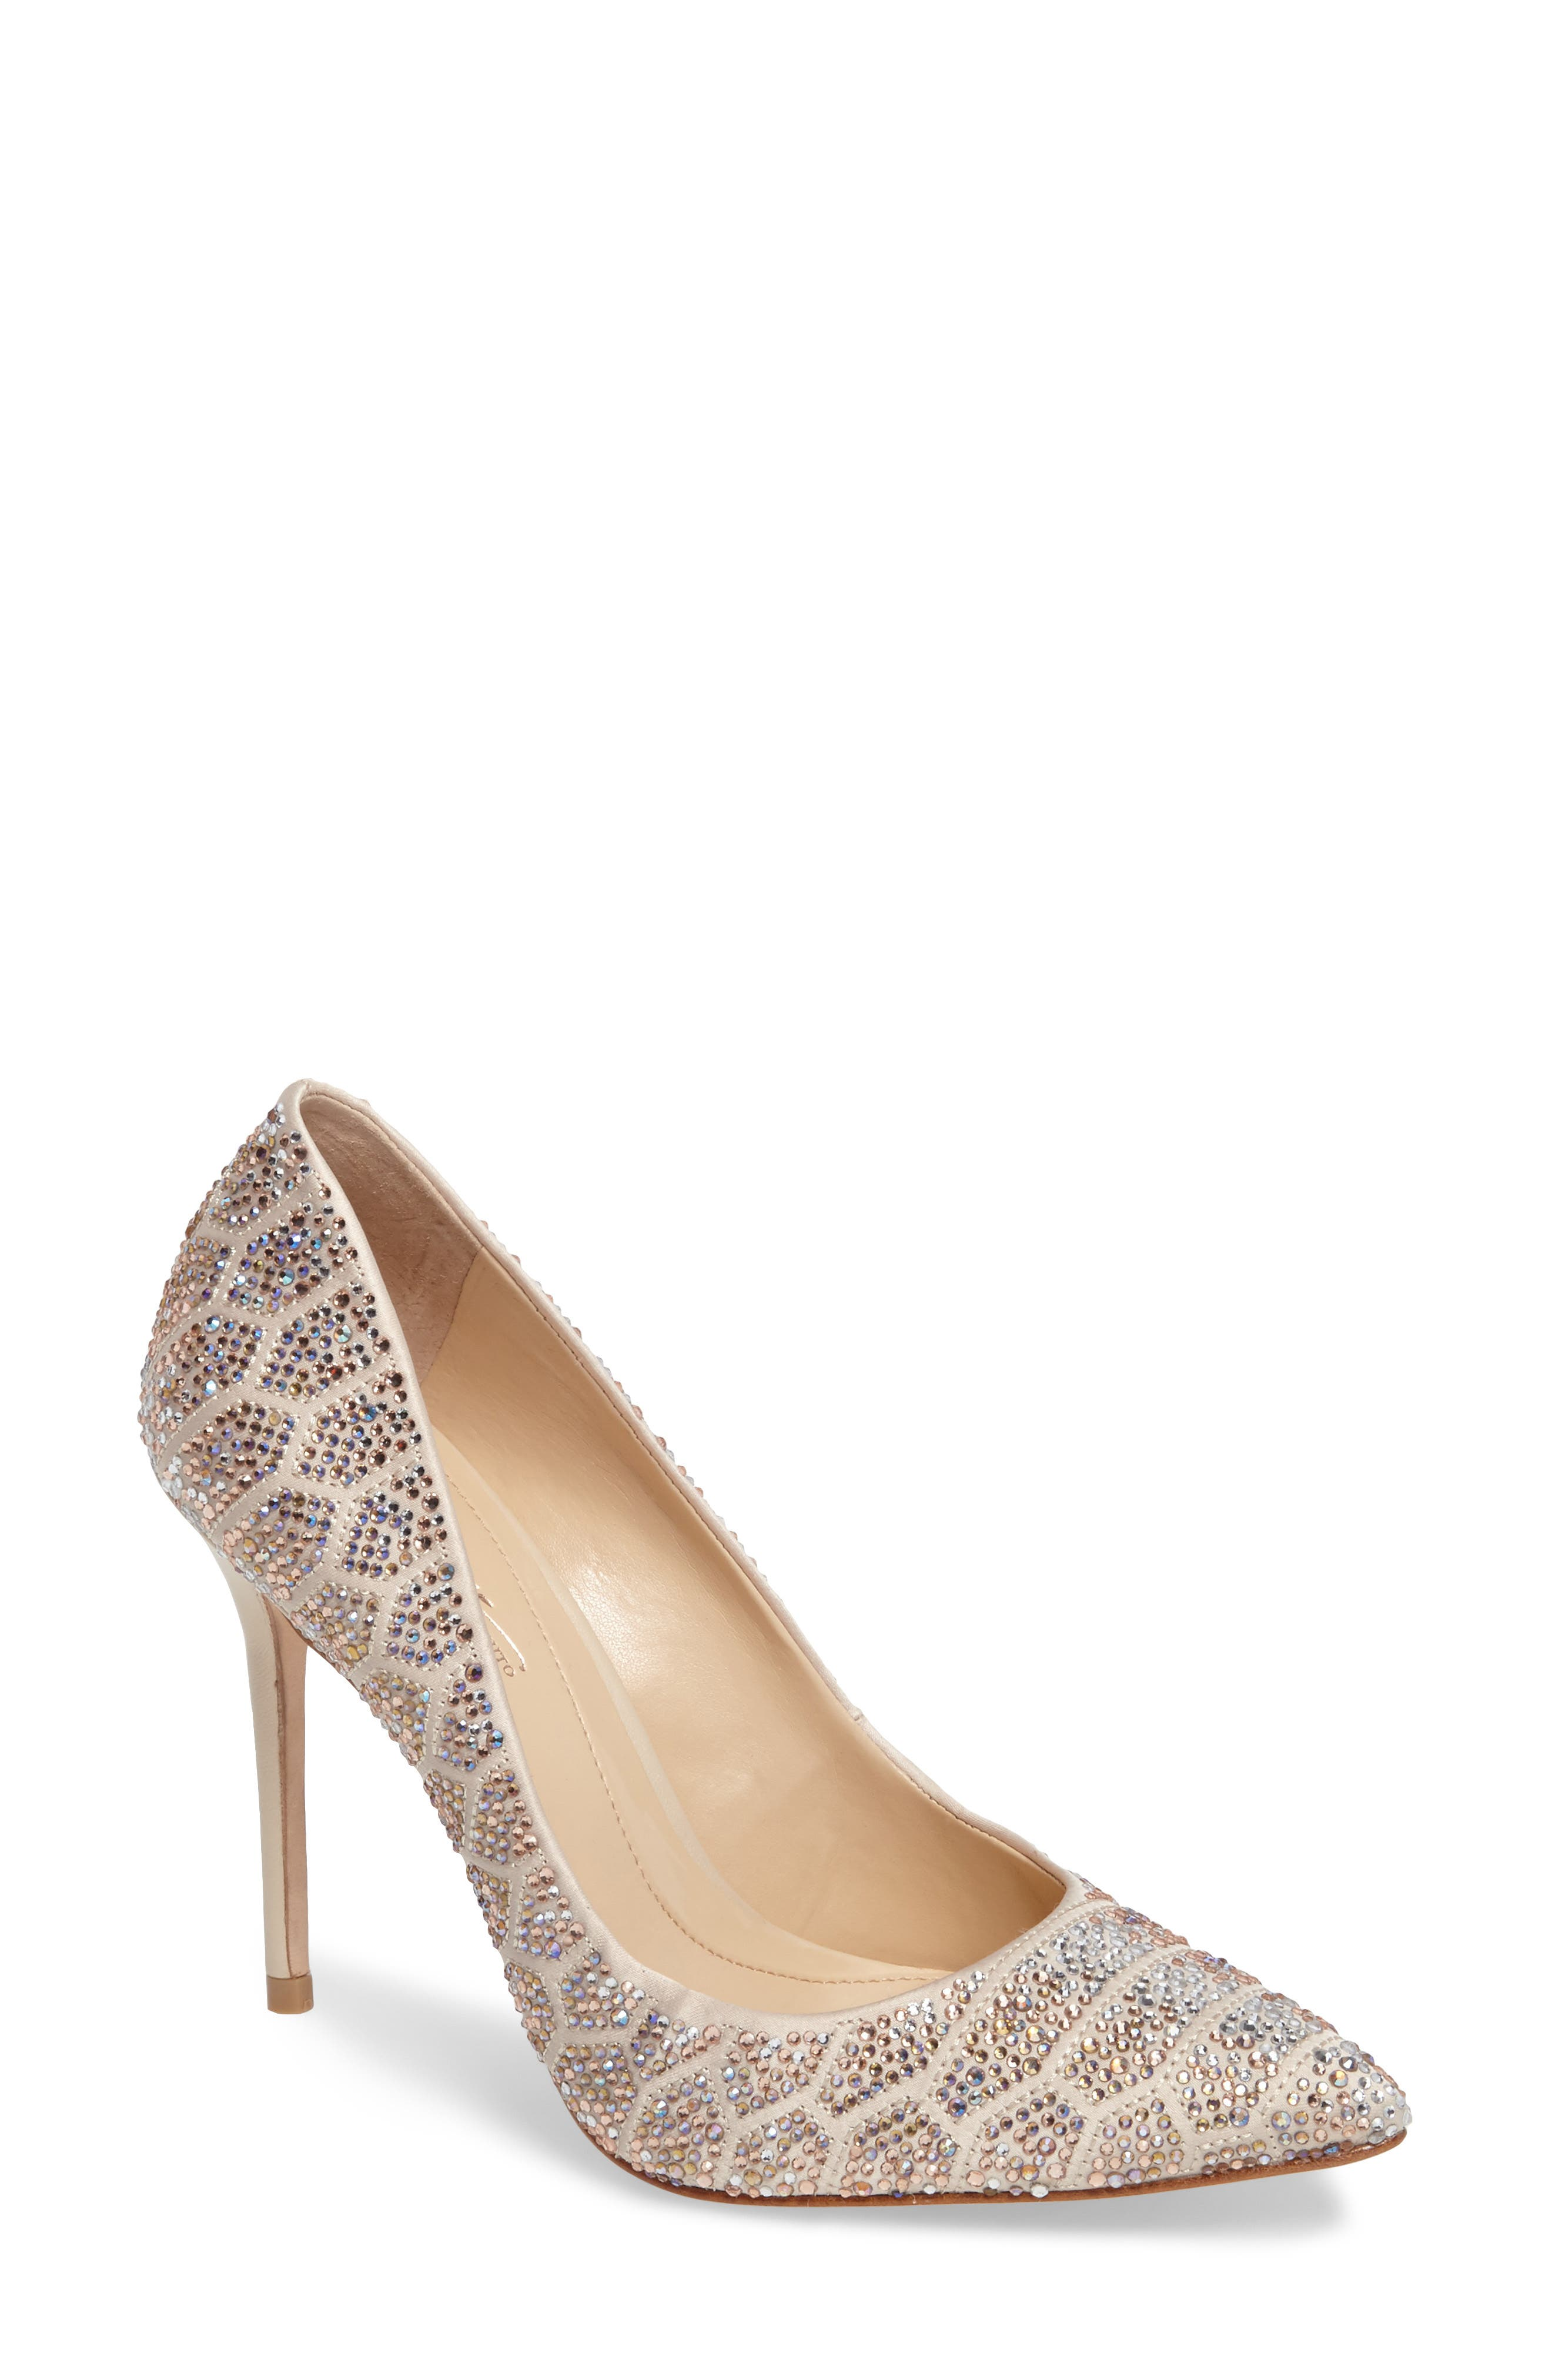 Imagine Vince Camuto 'Olivier' Pointy Toe Pump,                         Main,                         color, Light Sand